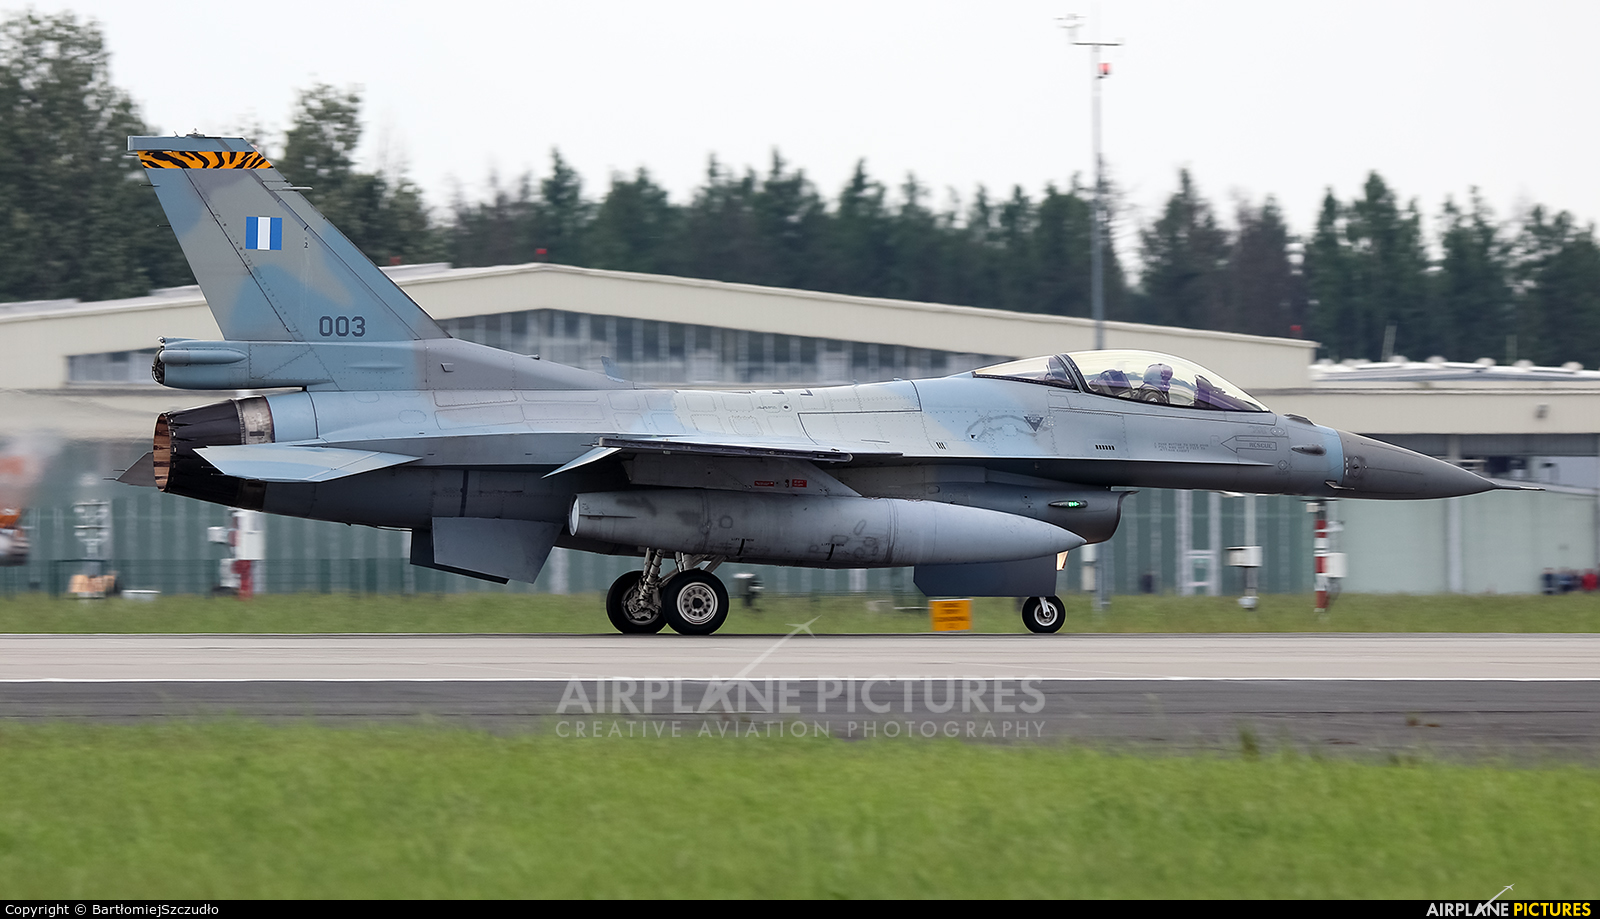 Greece - Hellenic Air Force 003 aircraft at Poznań - Krzesiny